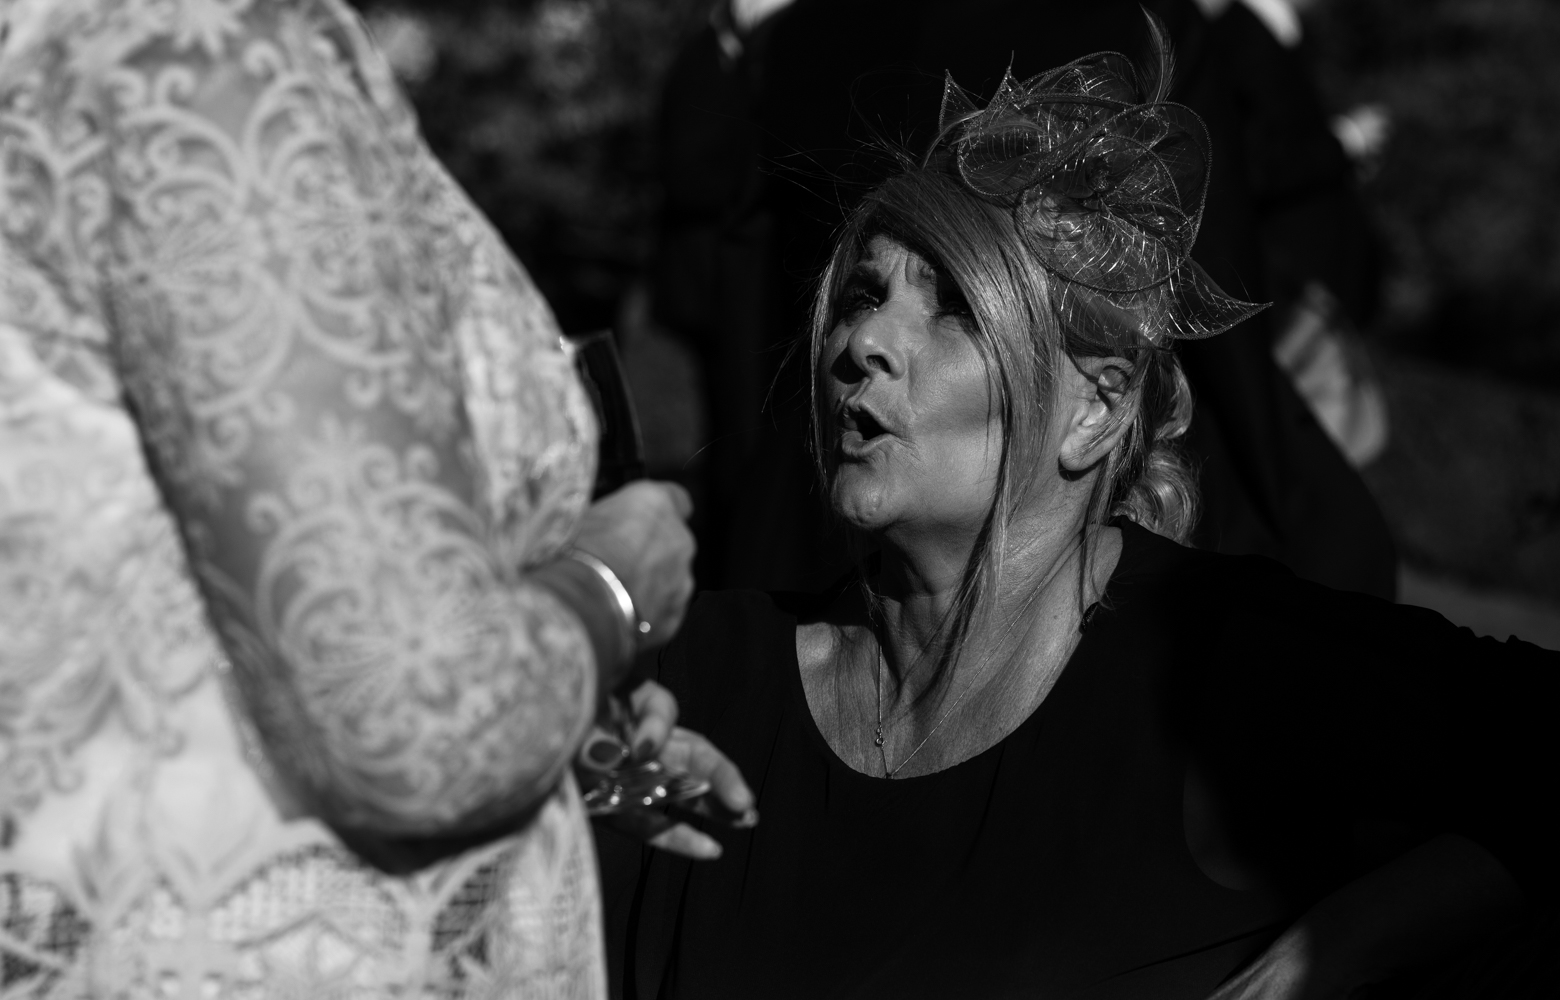 A black and white photo of one of the wedding guests during the drinks reception